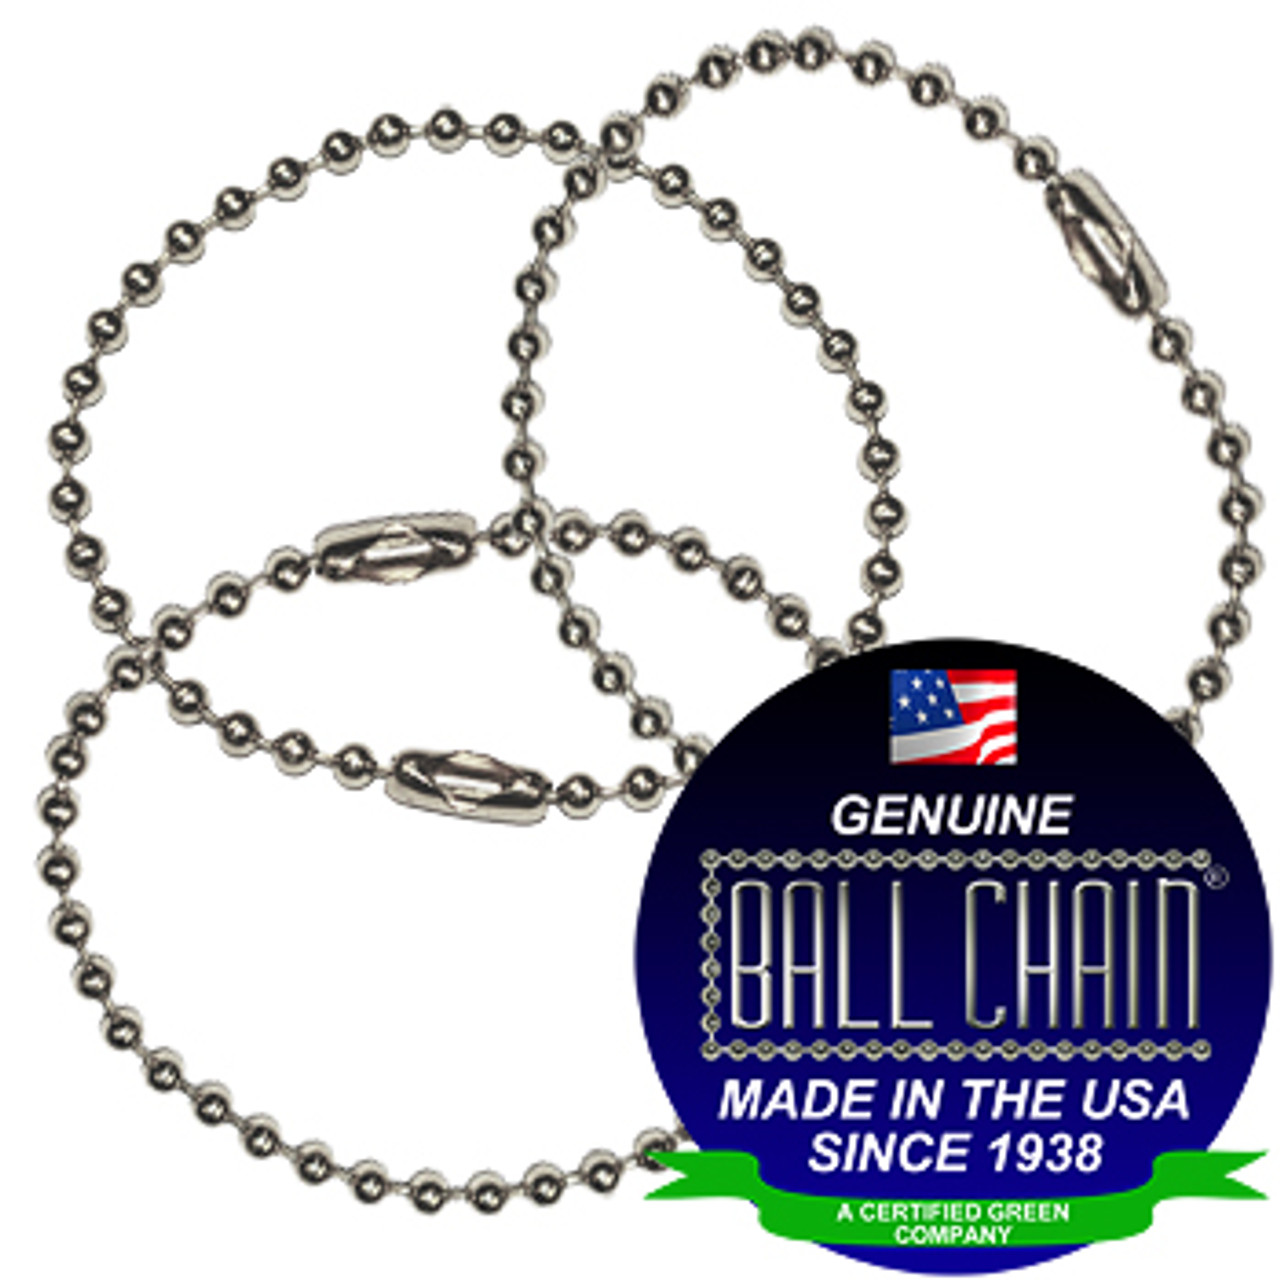 #3 Aluminum Key Chains - 4 Inch Length